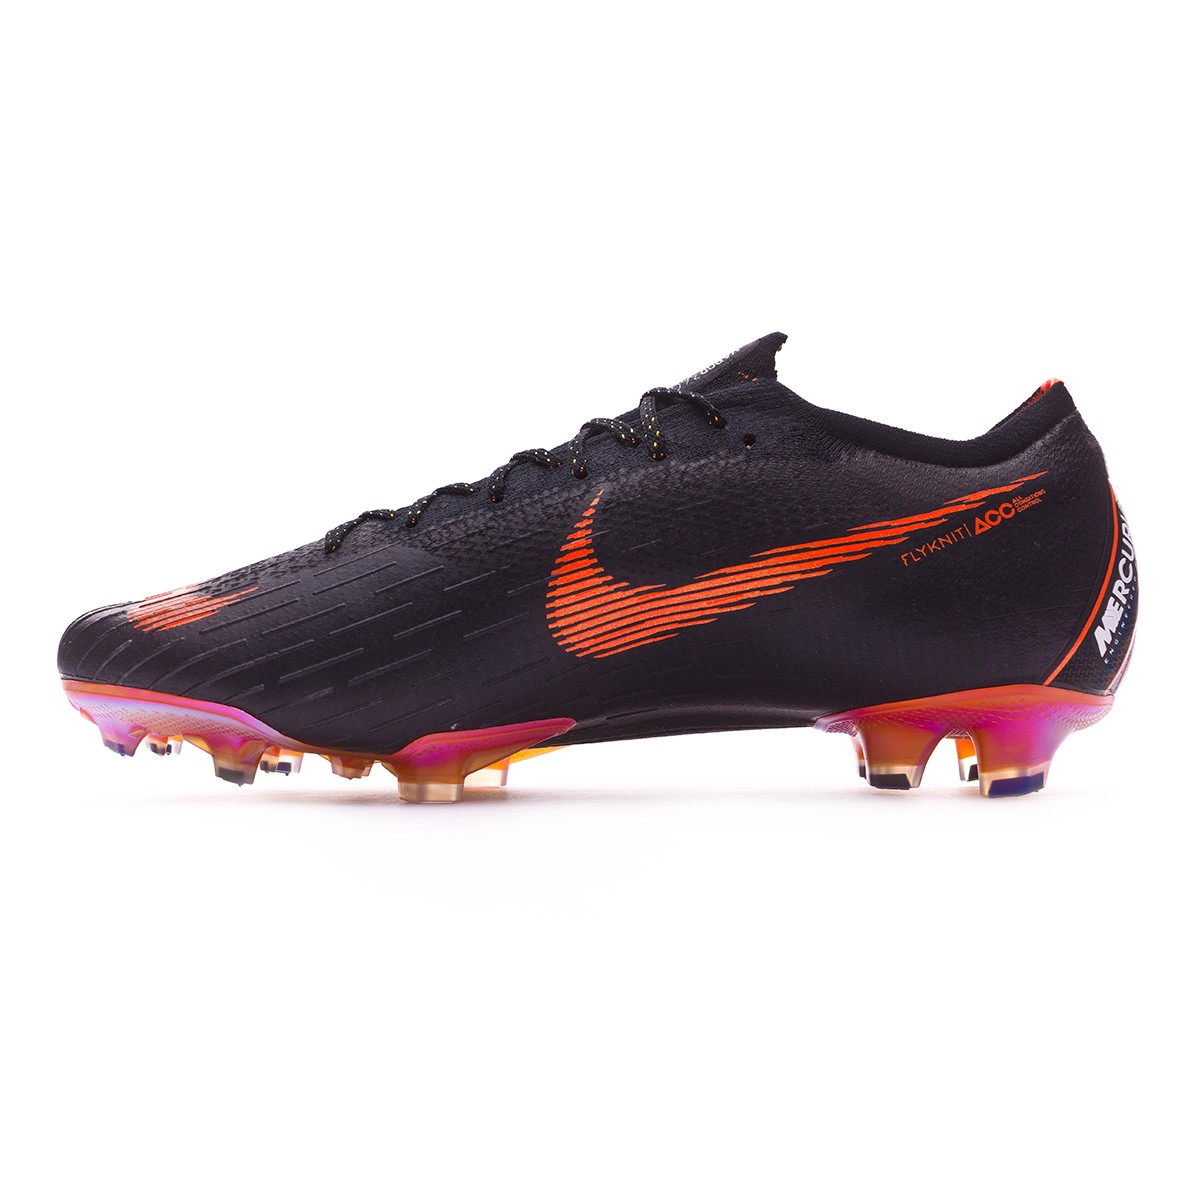 033ded761d8 Football Boots Nike Mercurial Vapor XII Elite FG Black-Total orange-White - Tienda  de fútbol Fútbol Emotion